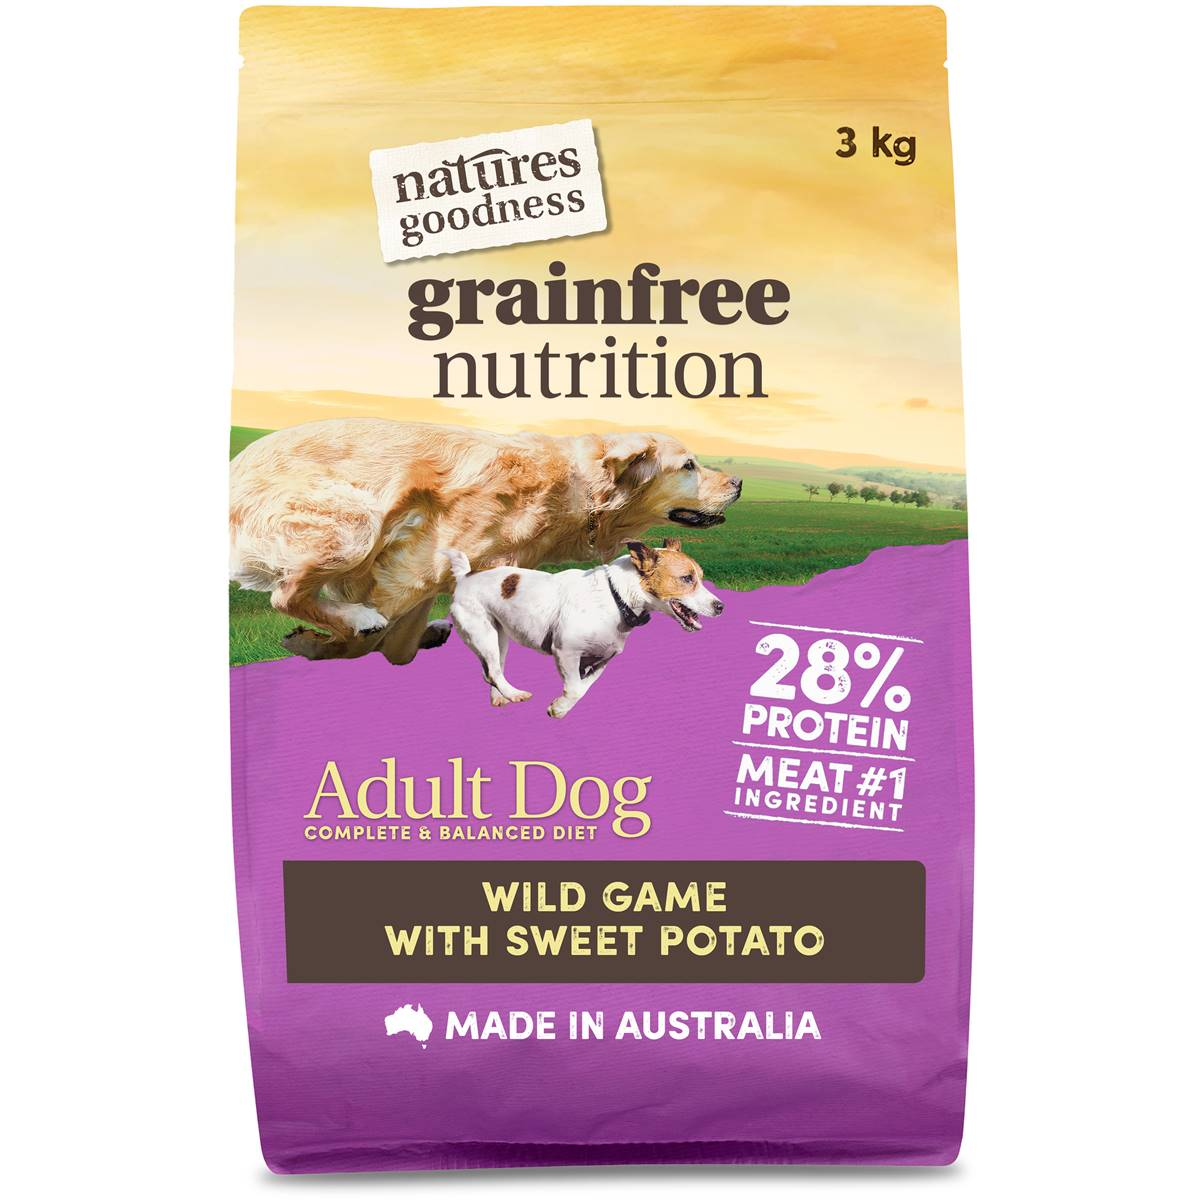 Natures Goodness Grain Free